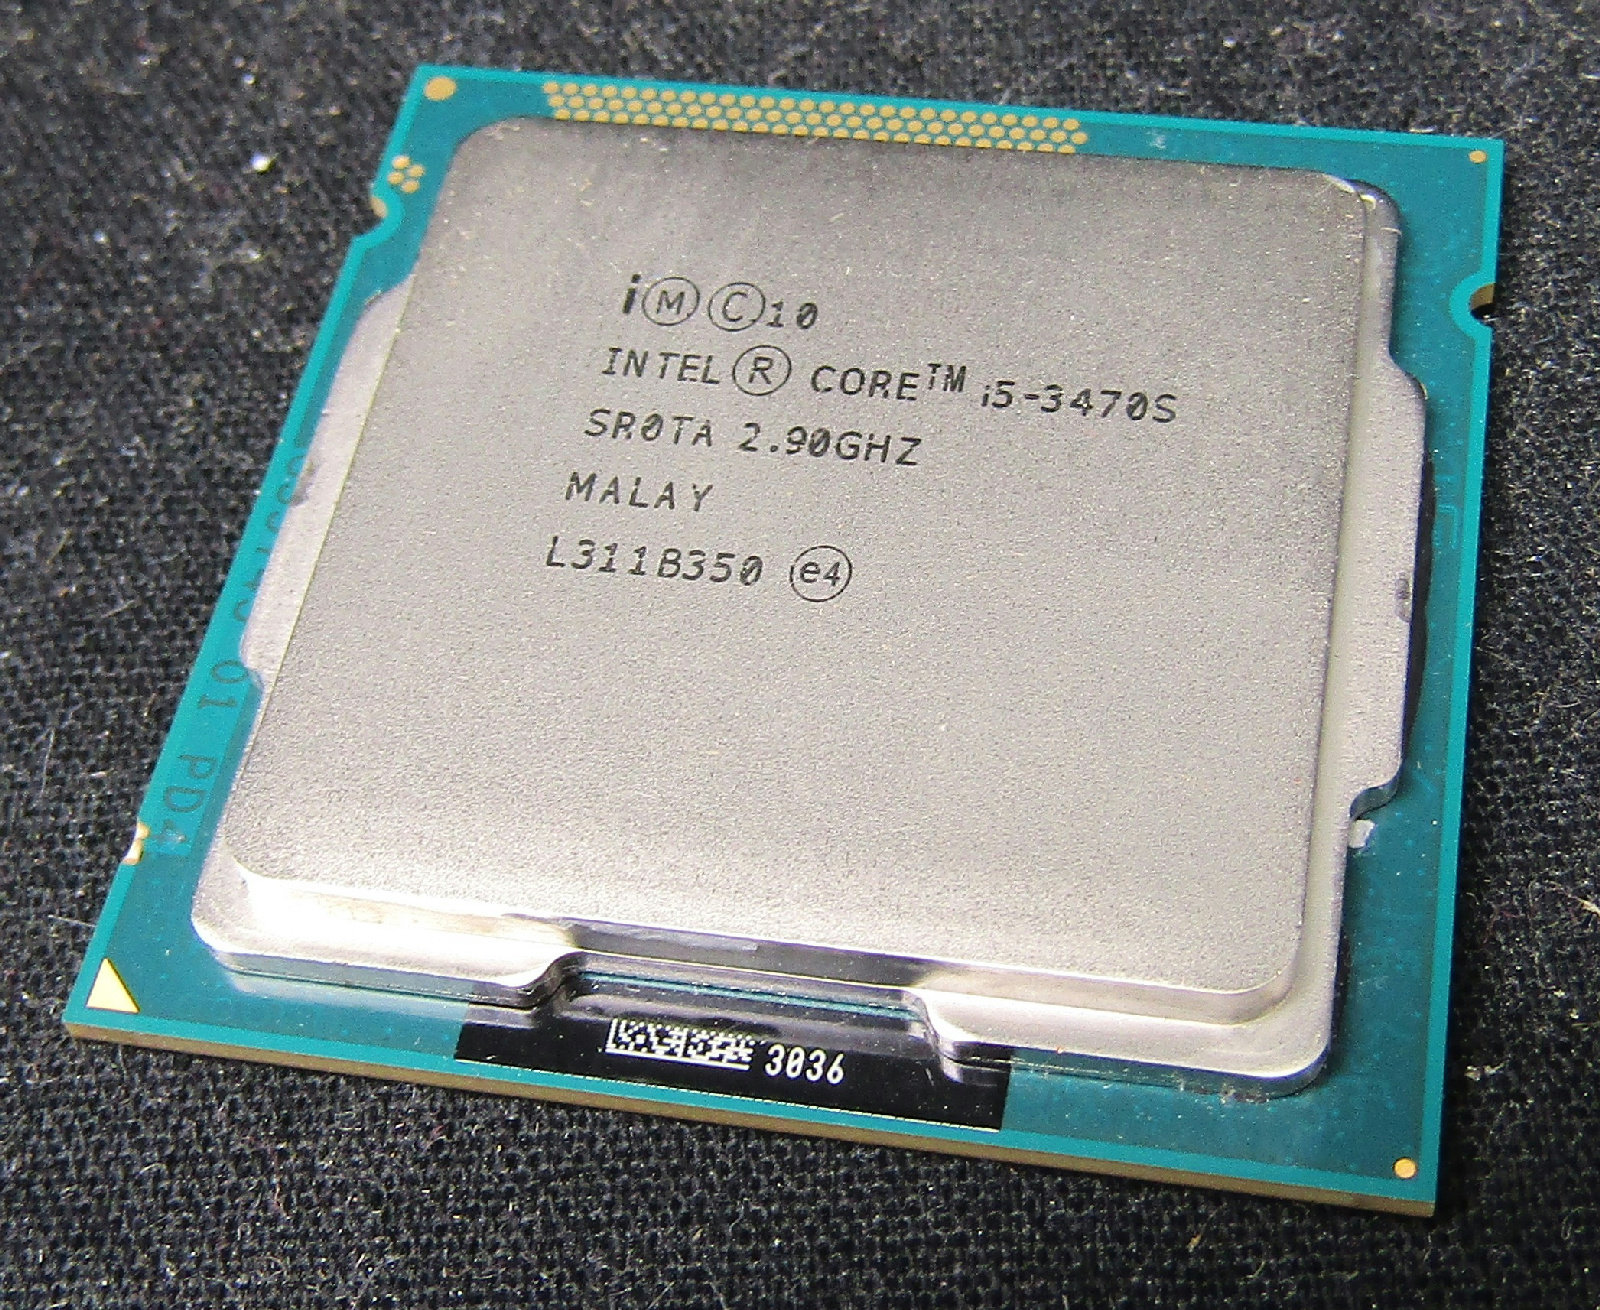 28x Intel Sr0ta Cpus | Lga1155 Desktop Core I5 I5-3470s | 2.90ghz | 6m Cache Auctions - Buy And ...